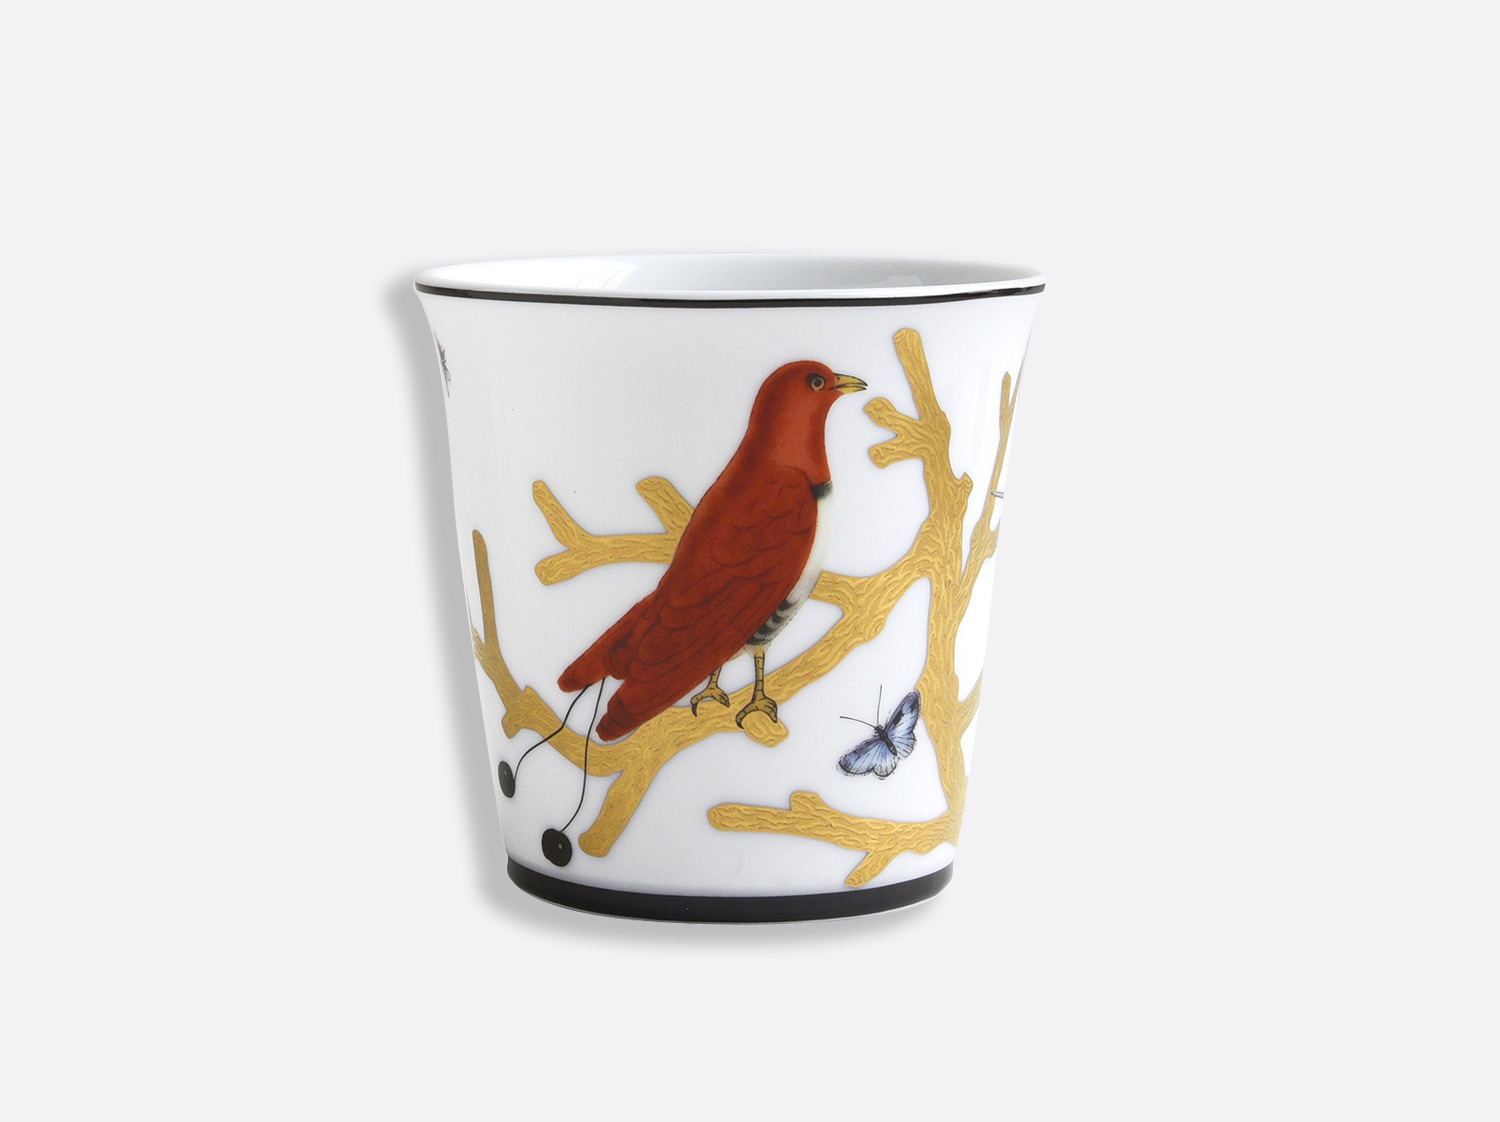 Pot 9 cm + bougie parfumée 200g en porcelaine de la collection Aux oiseaux - pot Bernardaud